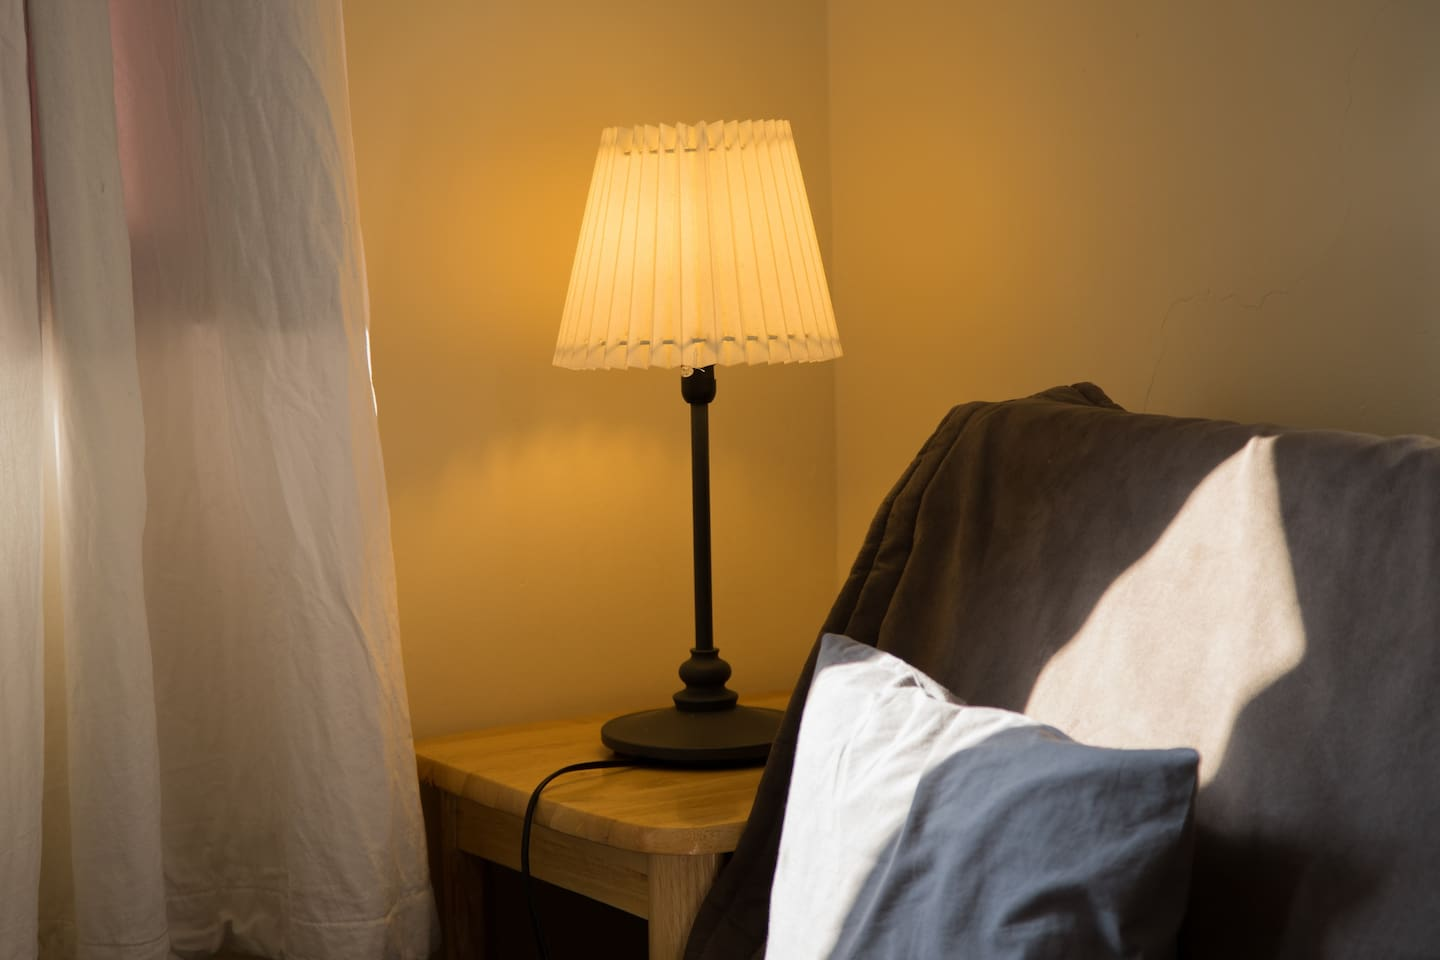 sofa and table light in your room